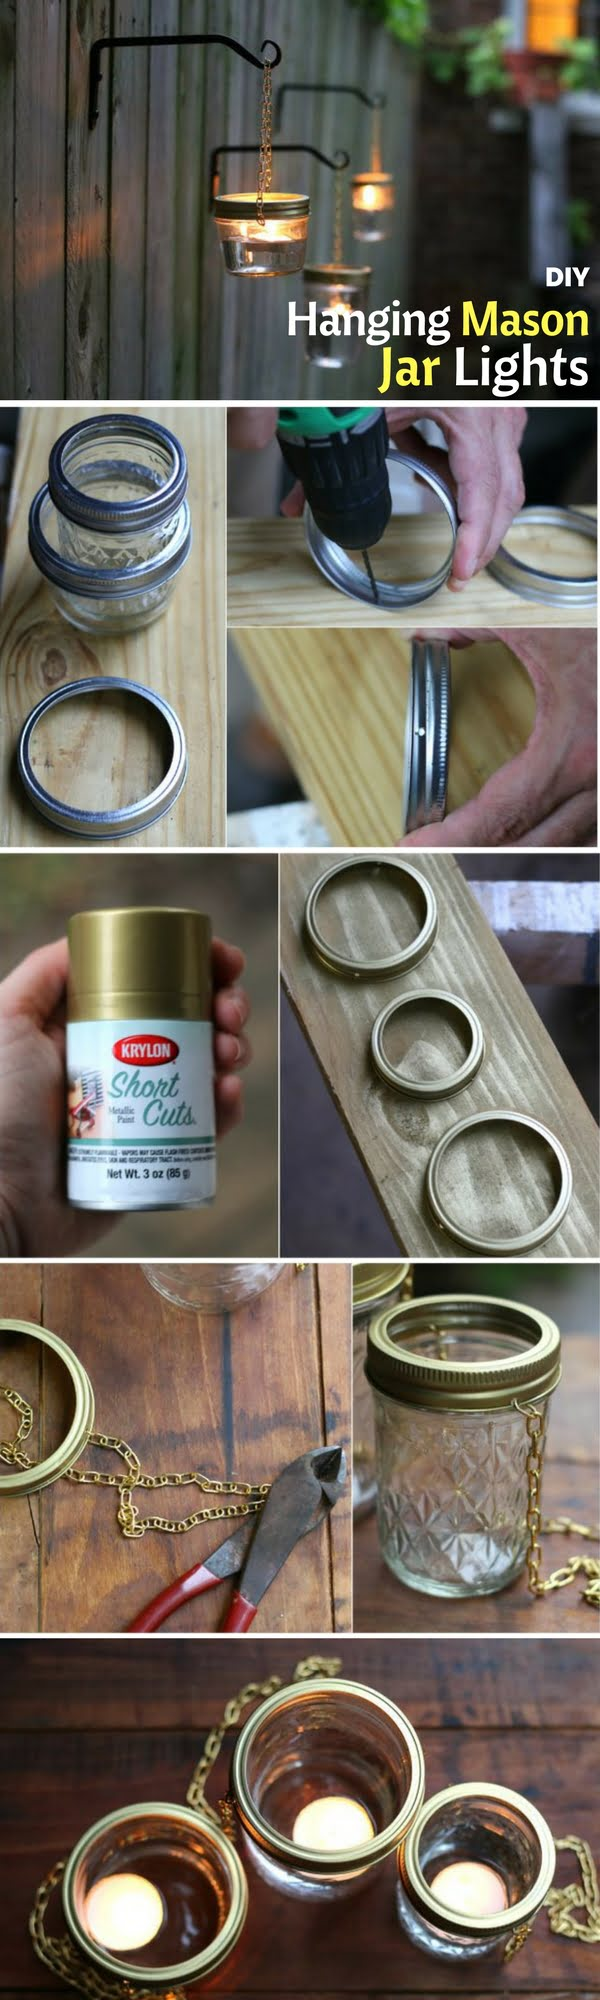 Check out how to make DIY outdoor lighting from mason jars